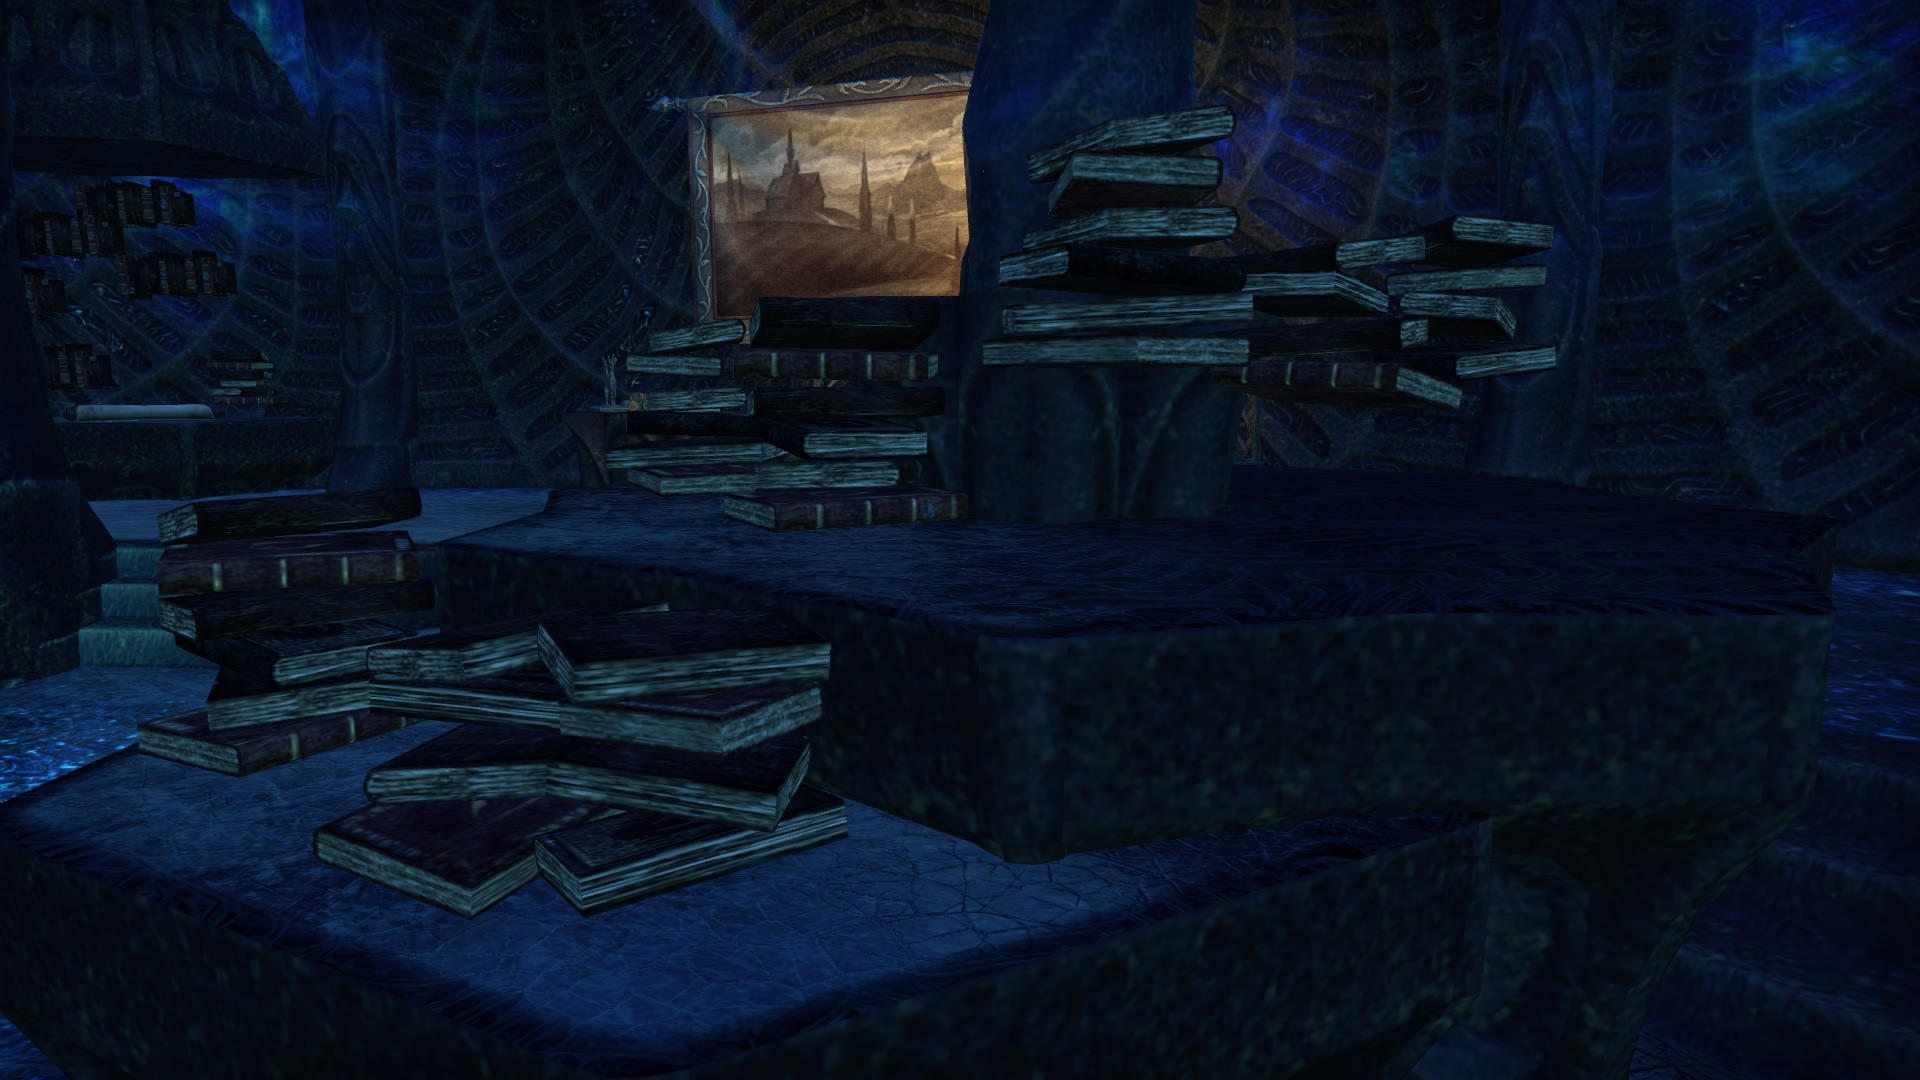 Floating books. How mystical.